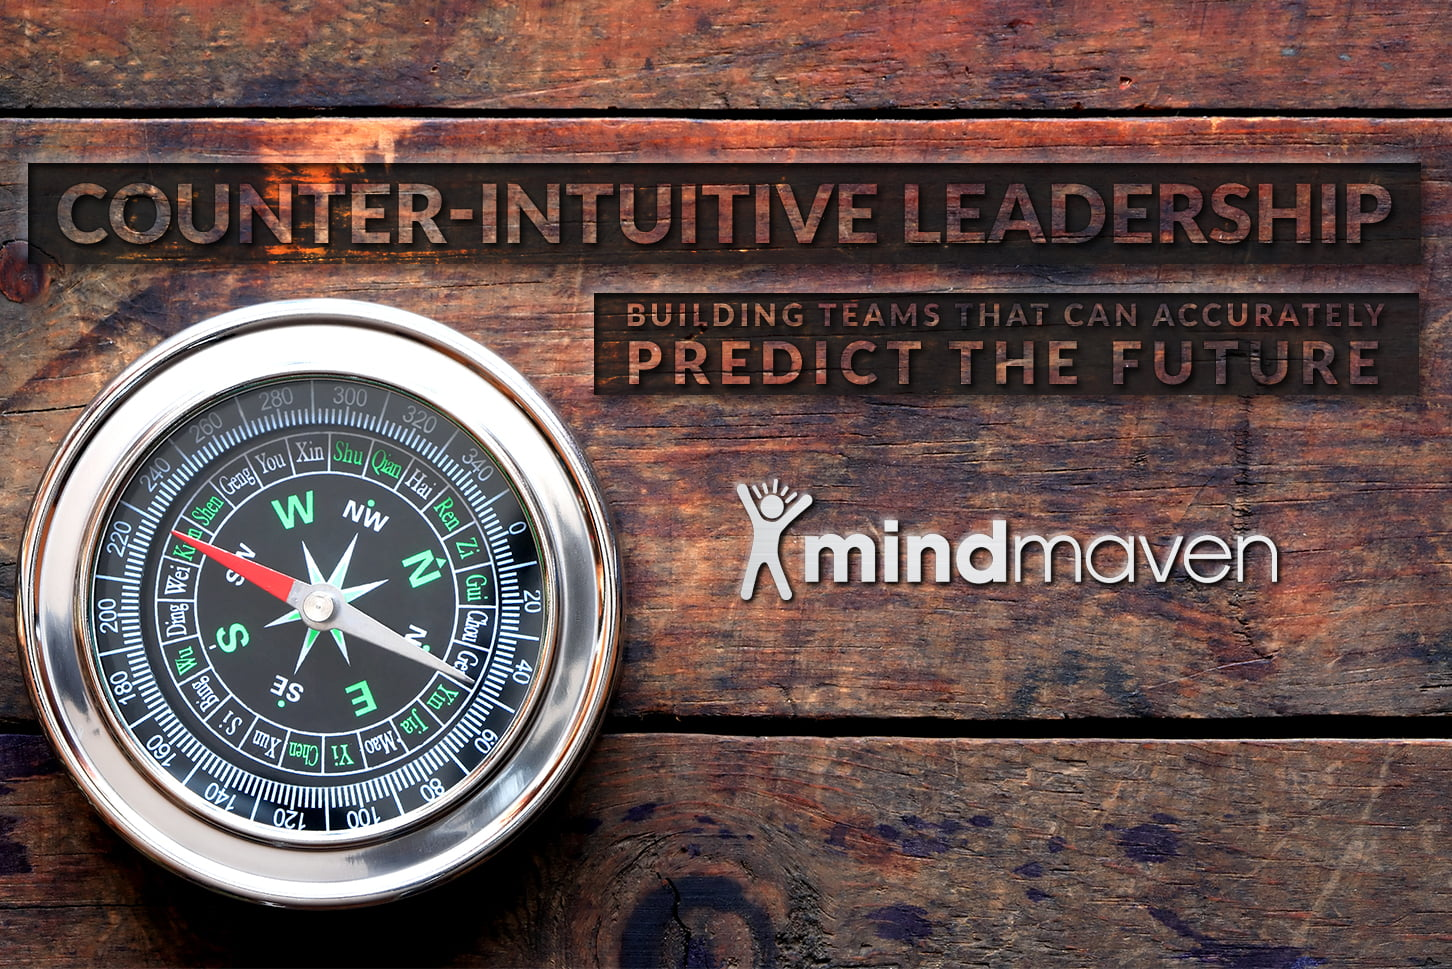 Counter-Intuitive Leadership: Building Teams That Can (Accurately) Predict the Future